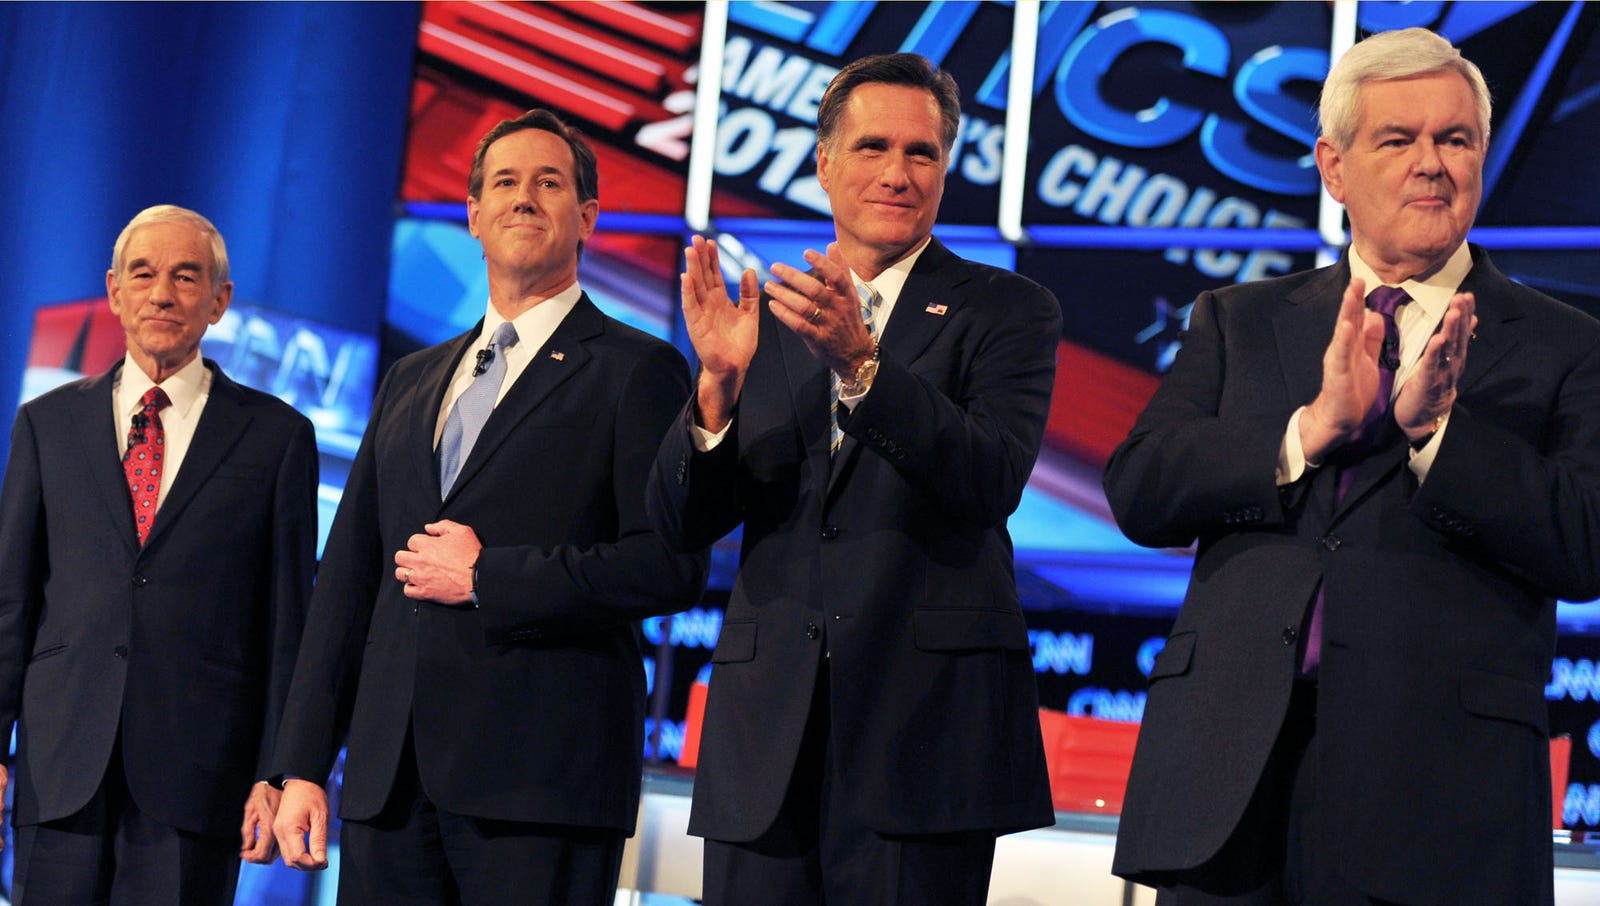 Number Of Songs GOP Candidates Can Use Down To 4